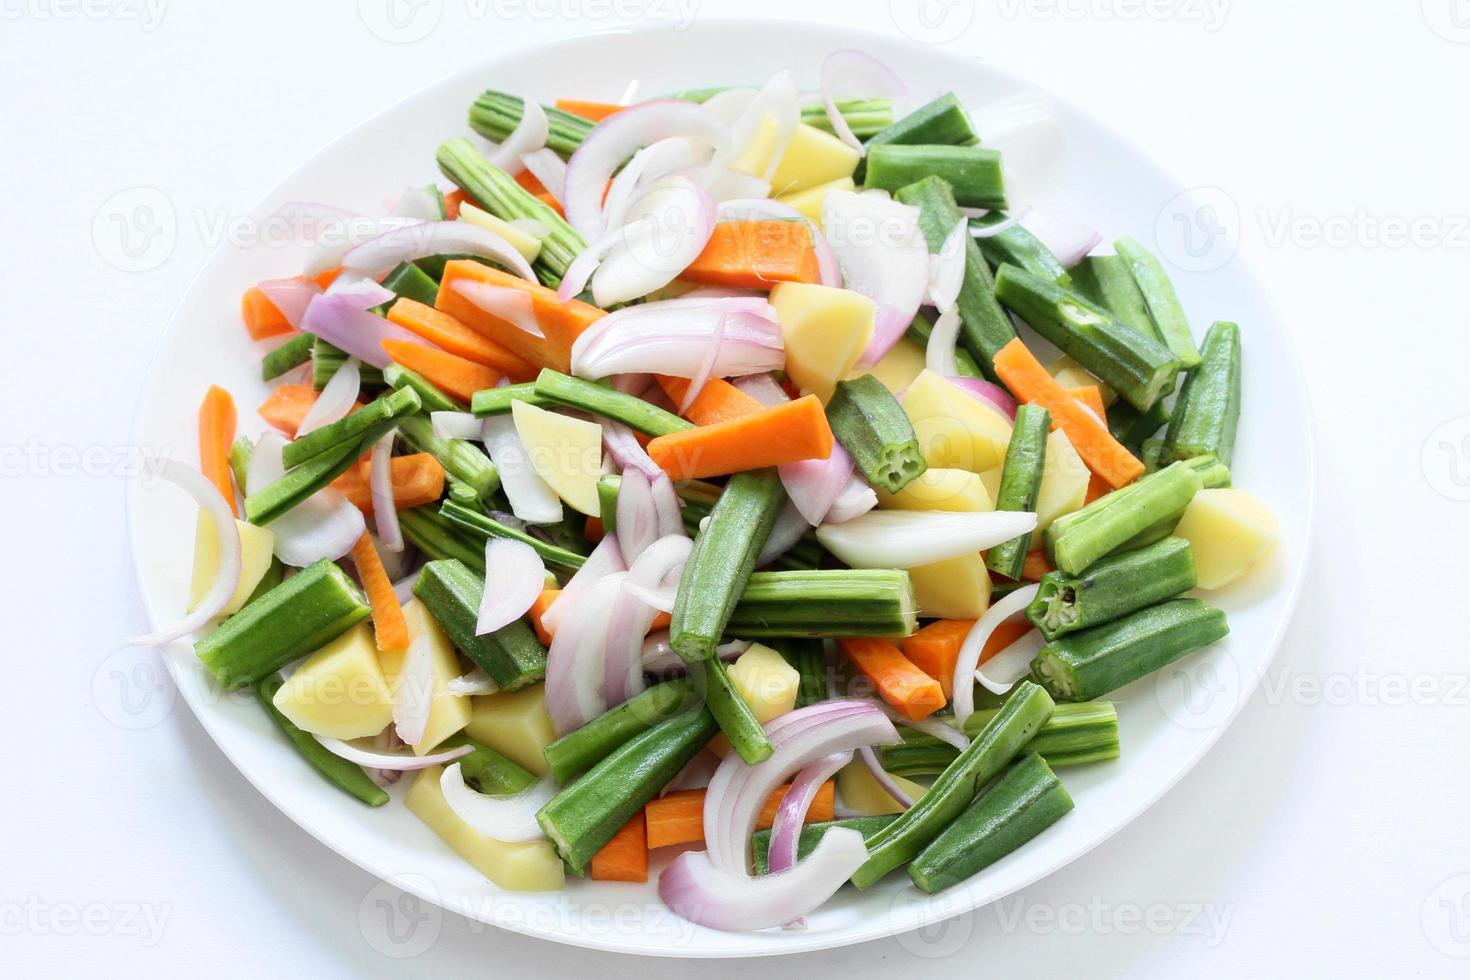 Mixed vegetables in a plate background photo